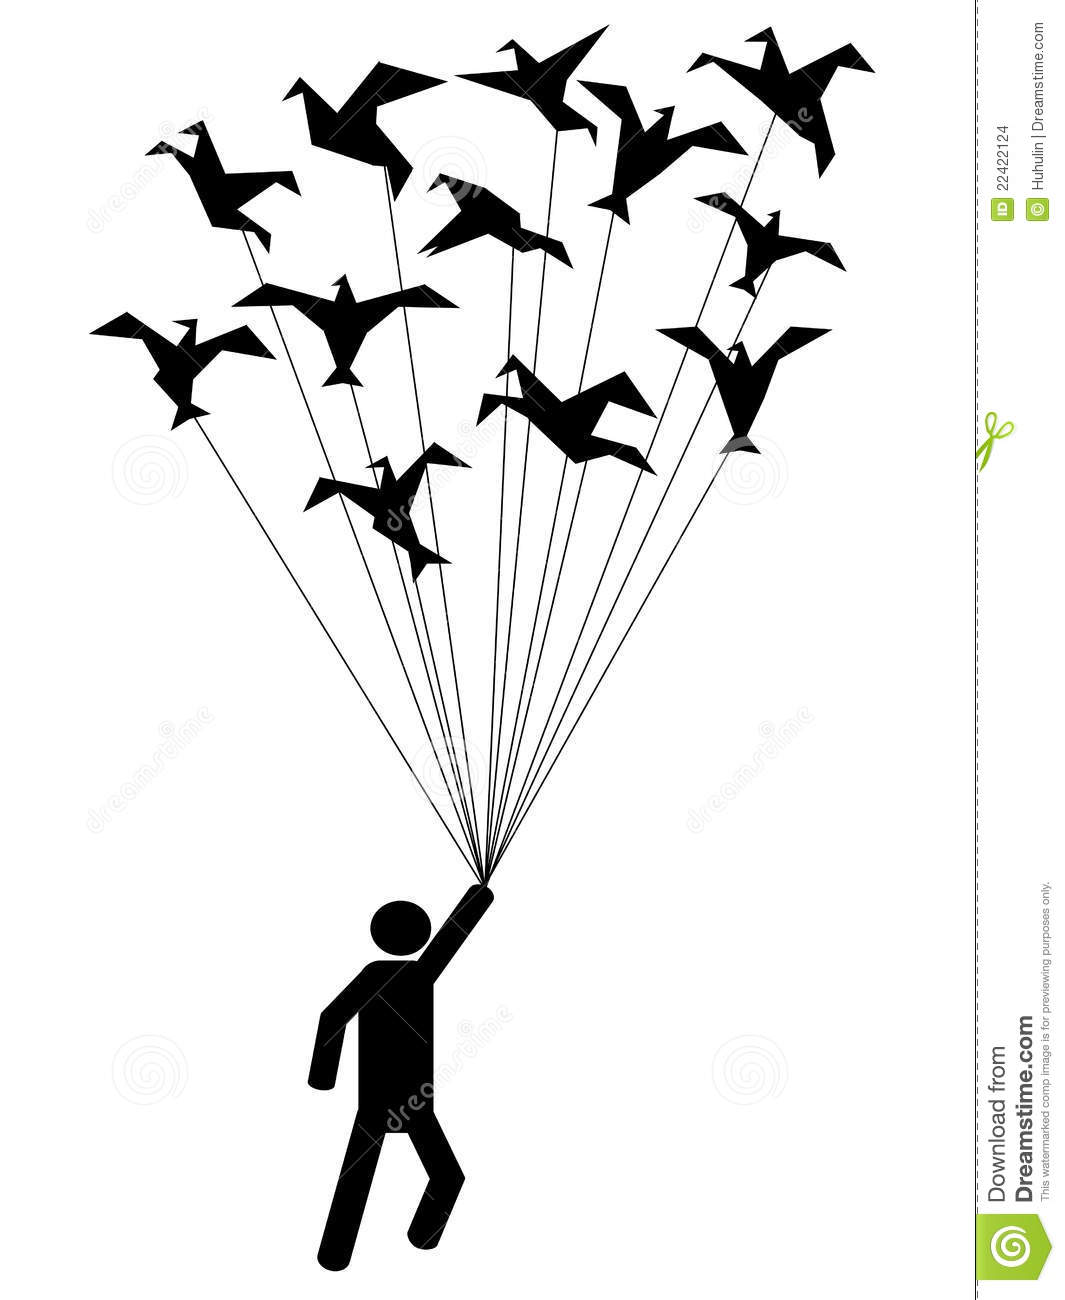 Symbol People Carried By Flying Paper Birds Stock Vector